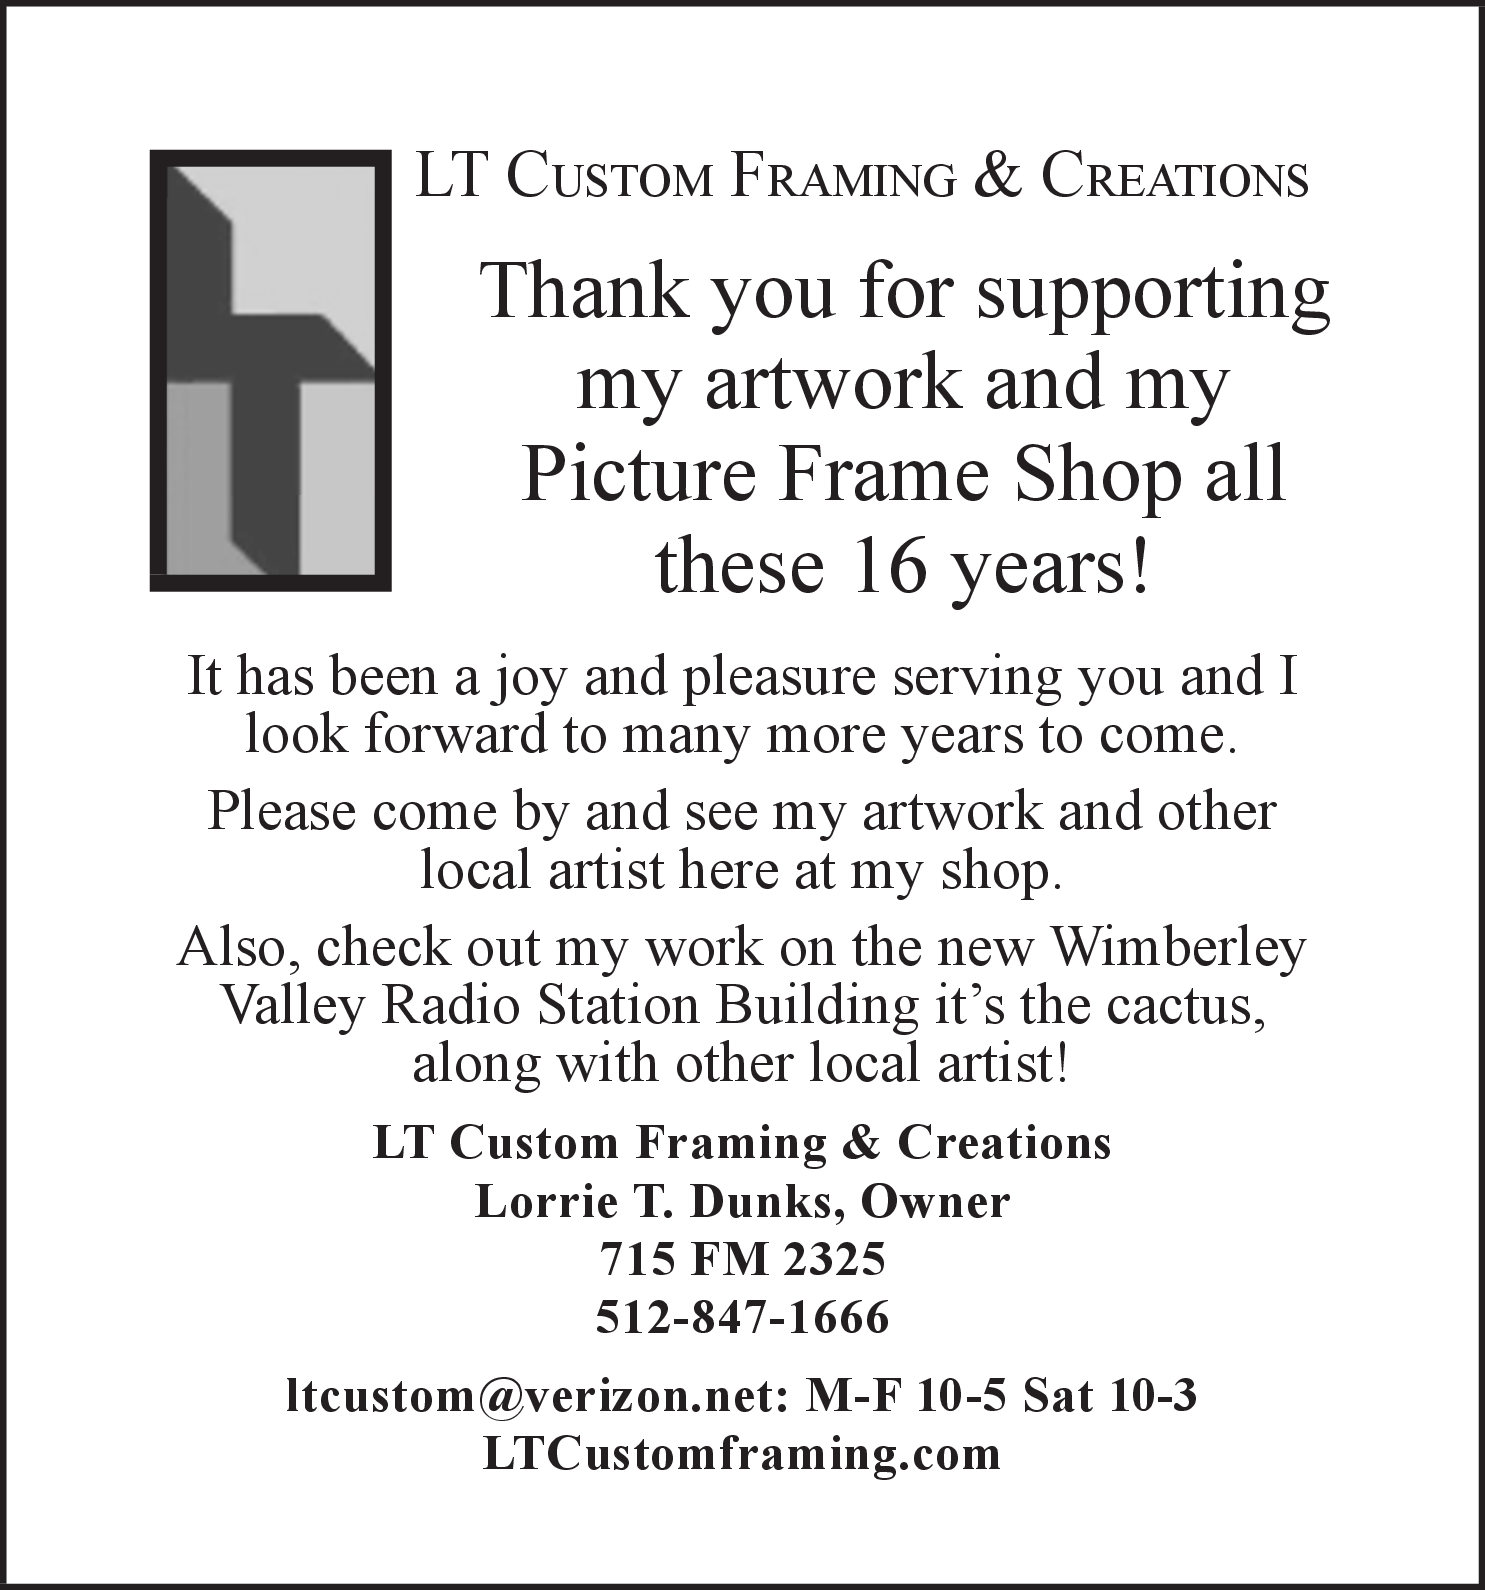 Best Framing & Creations Shop in Wimberley, TX, Picture Frames ...